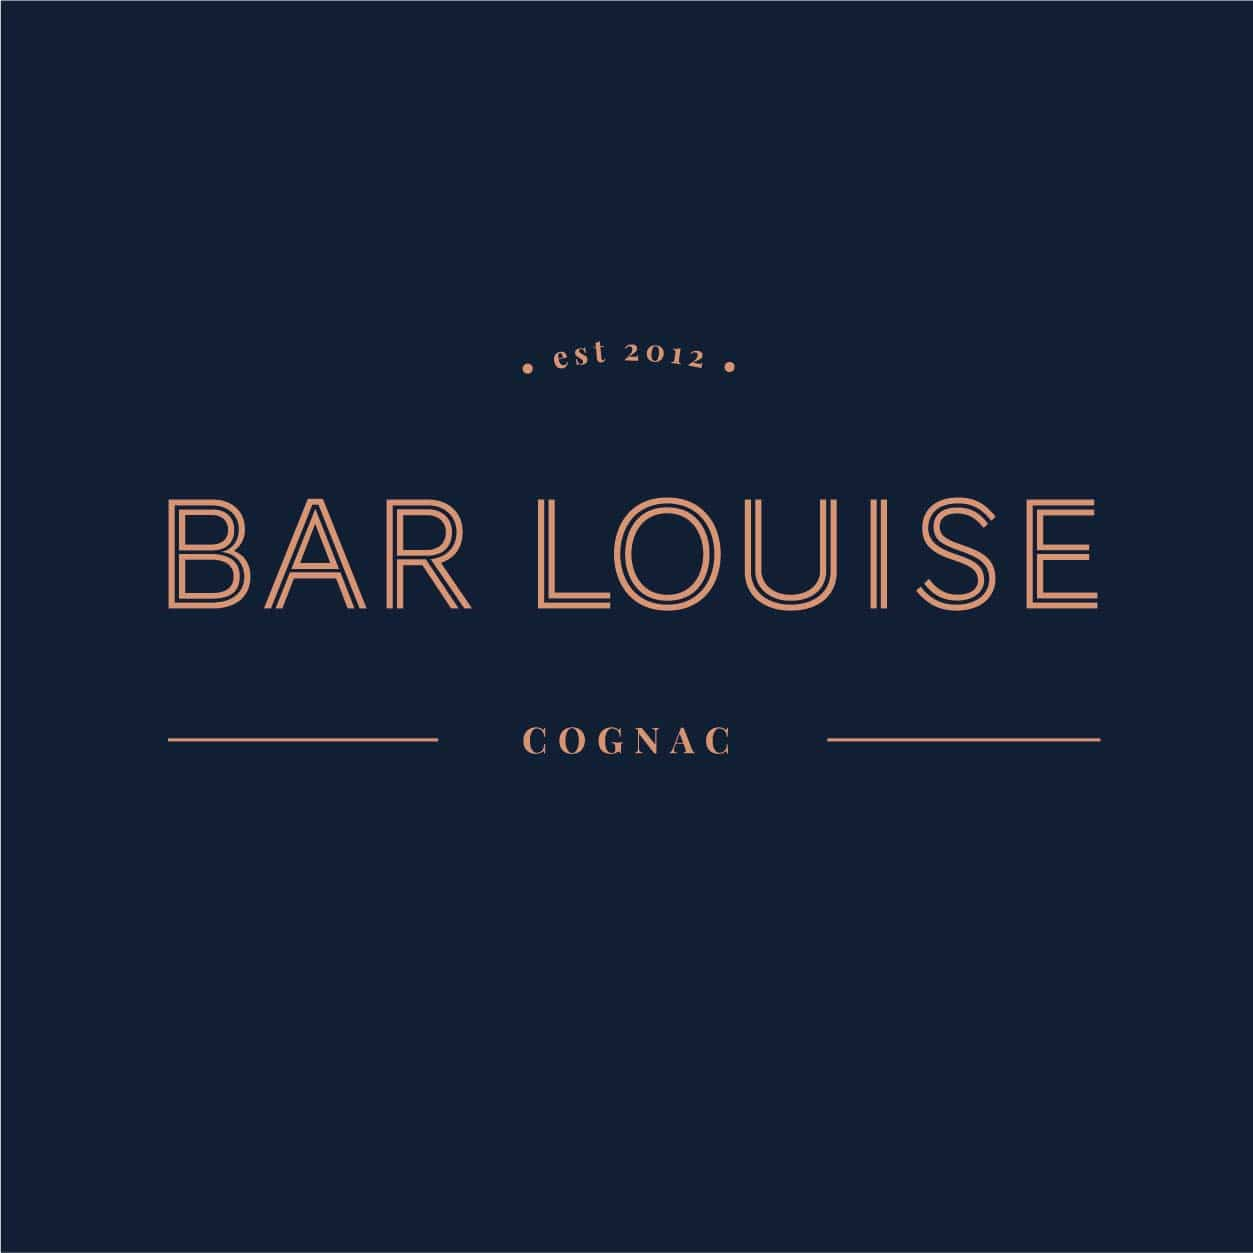 logo bar louise cognac carre